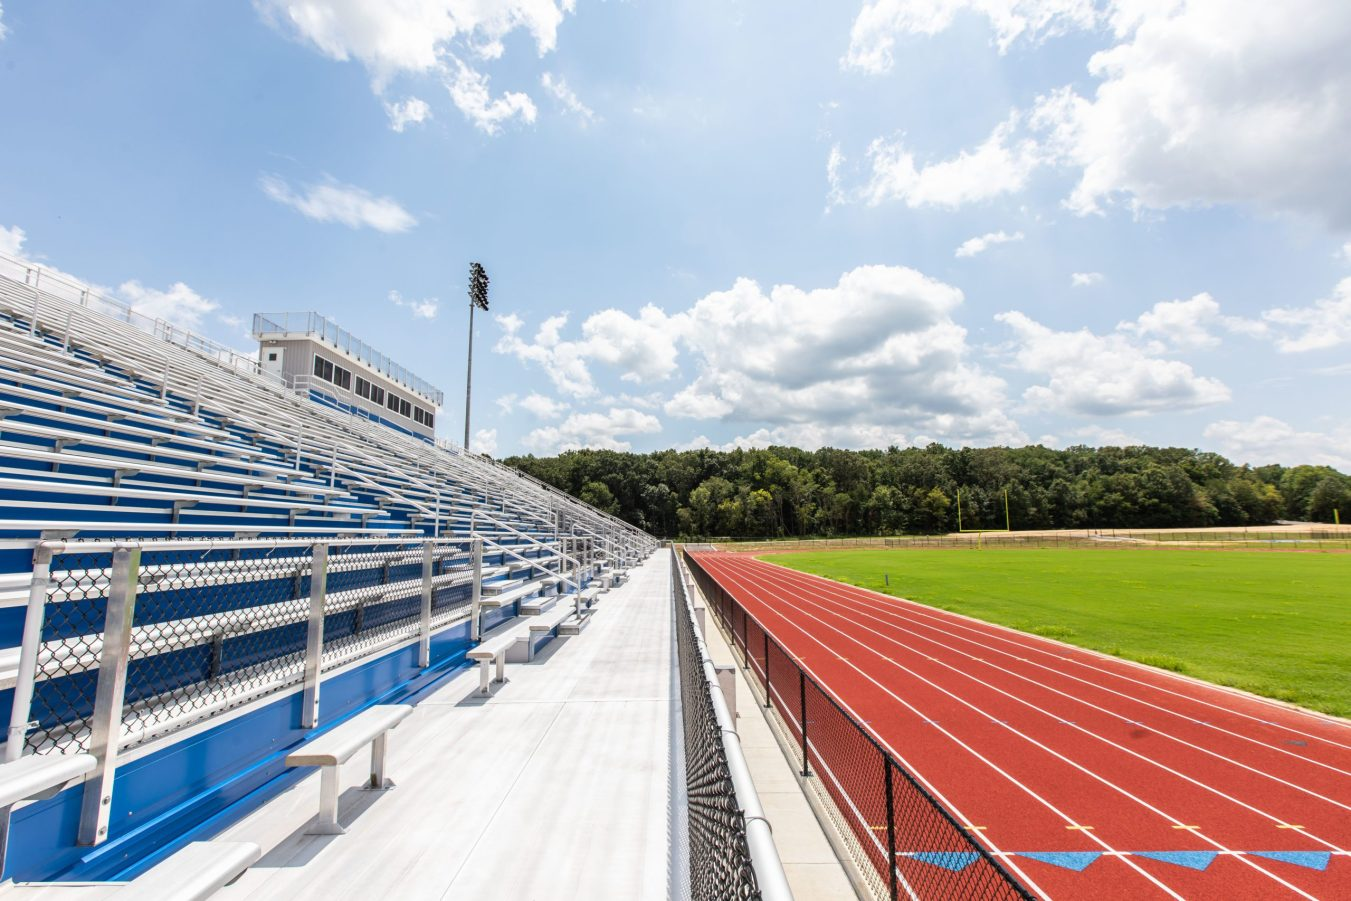 Track field with stadium stand